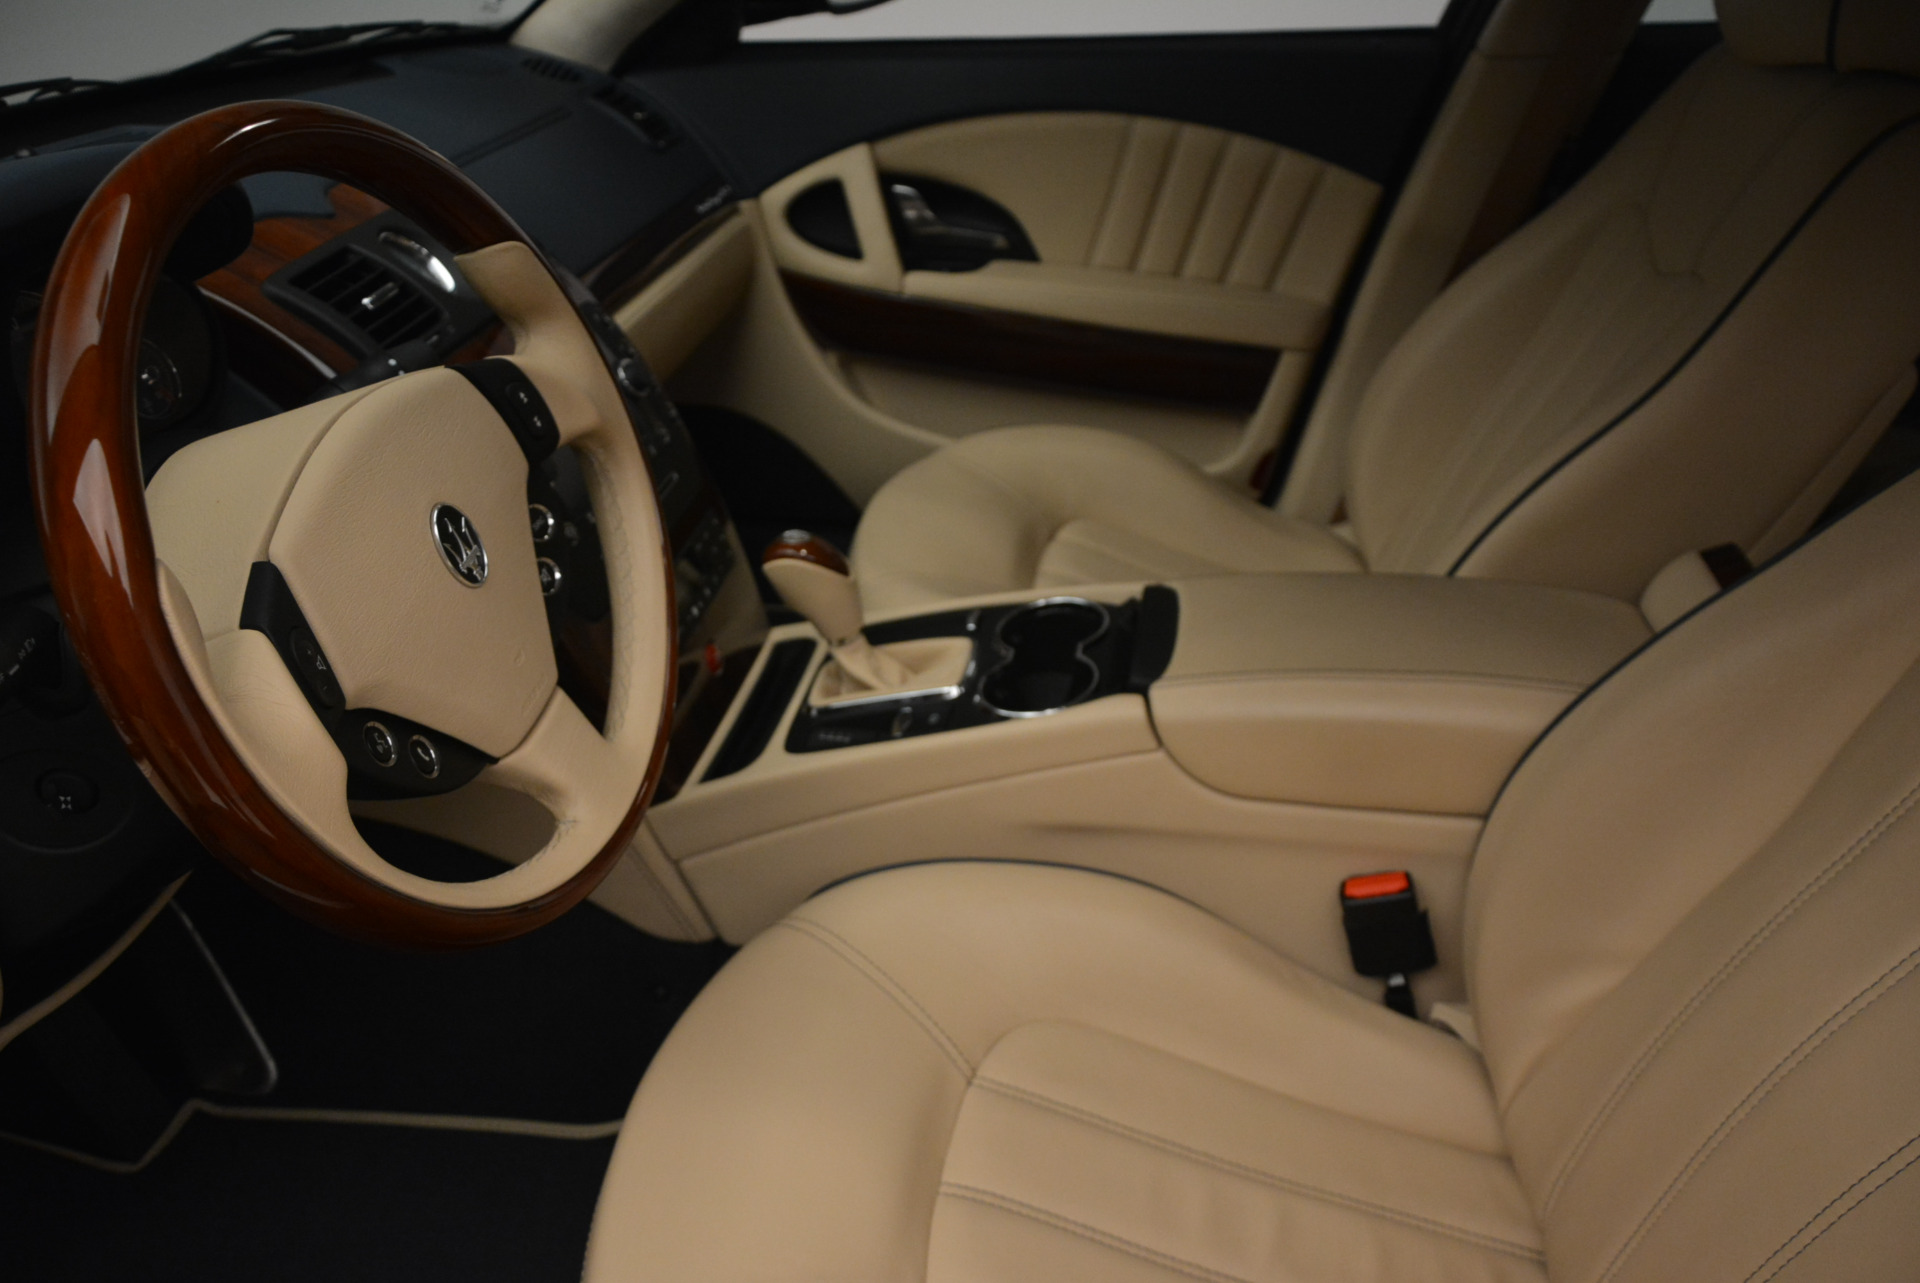 Used 2010 Maserati Quattroporte S For Sale In Westport, CT 795_p14